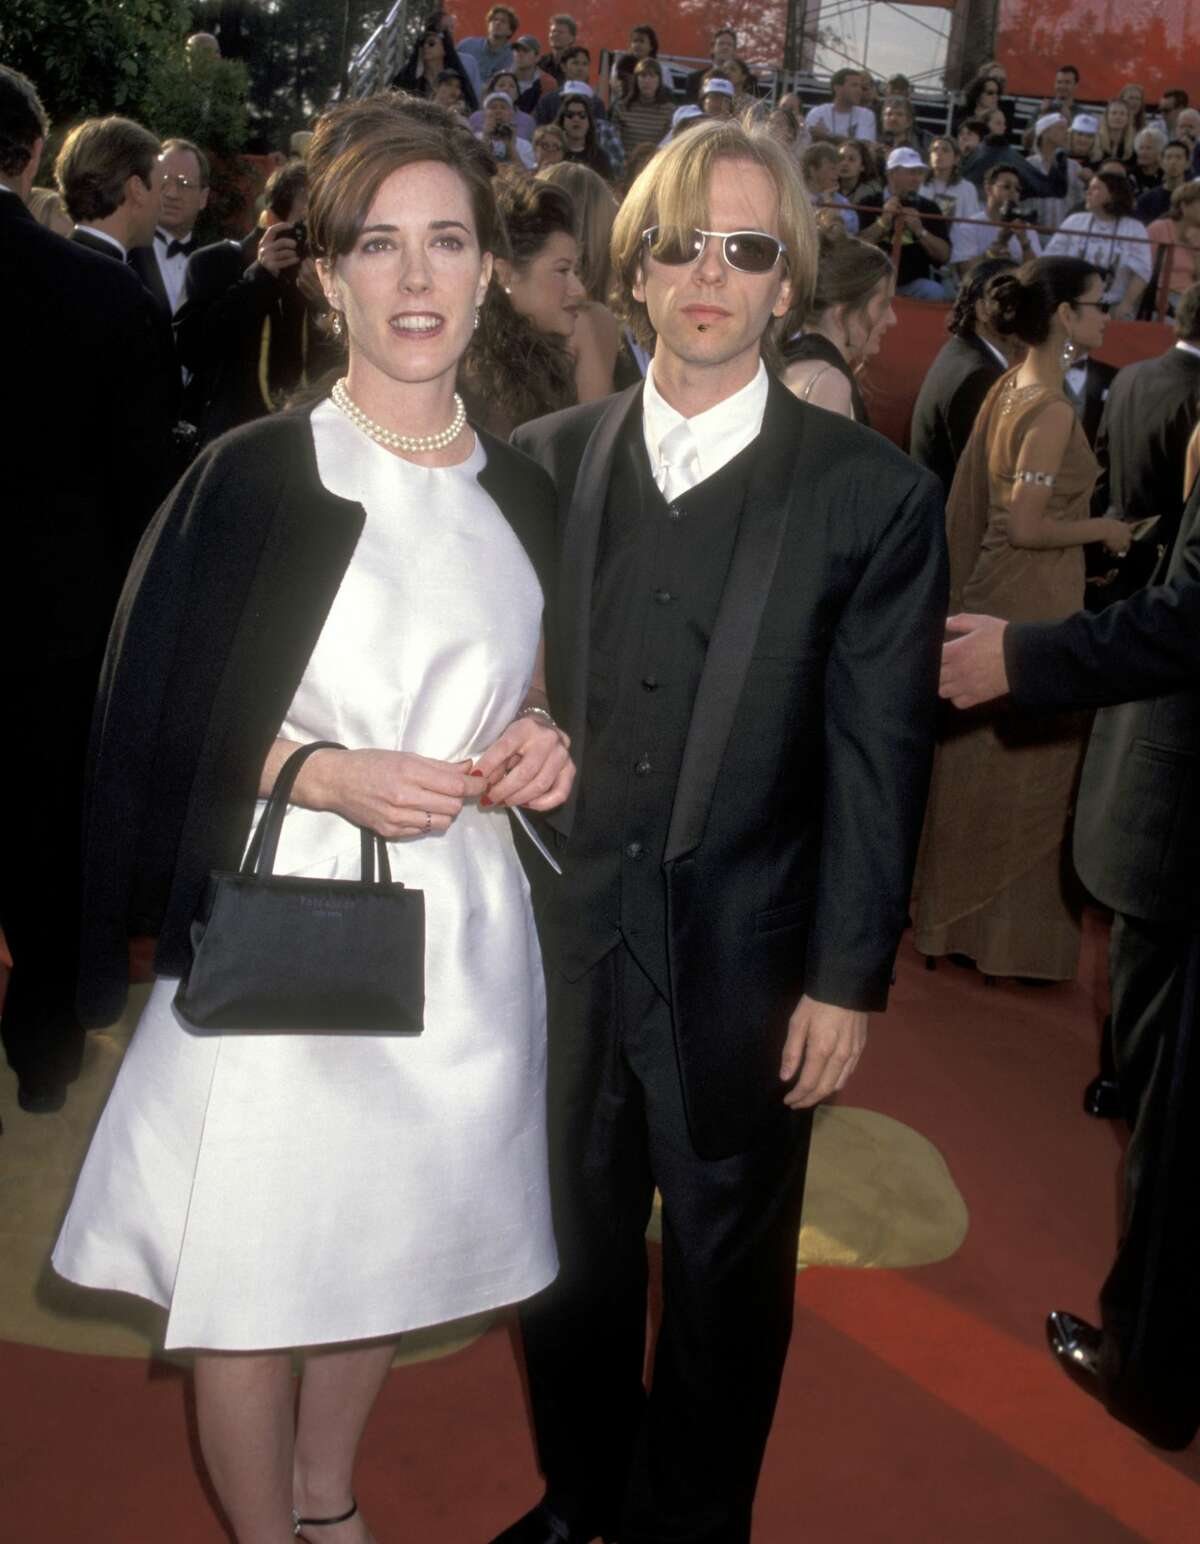 Iconic designer, Kate Spade was found dead in an apparent suicide on June 5. >> See the legendary fashionista through the years. 1997: David Spade and Kate Spade during The 69th Annual Academy Awards - Arrivals at Shrine Auditorium in Los Angeles, California, United States.